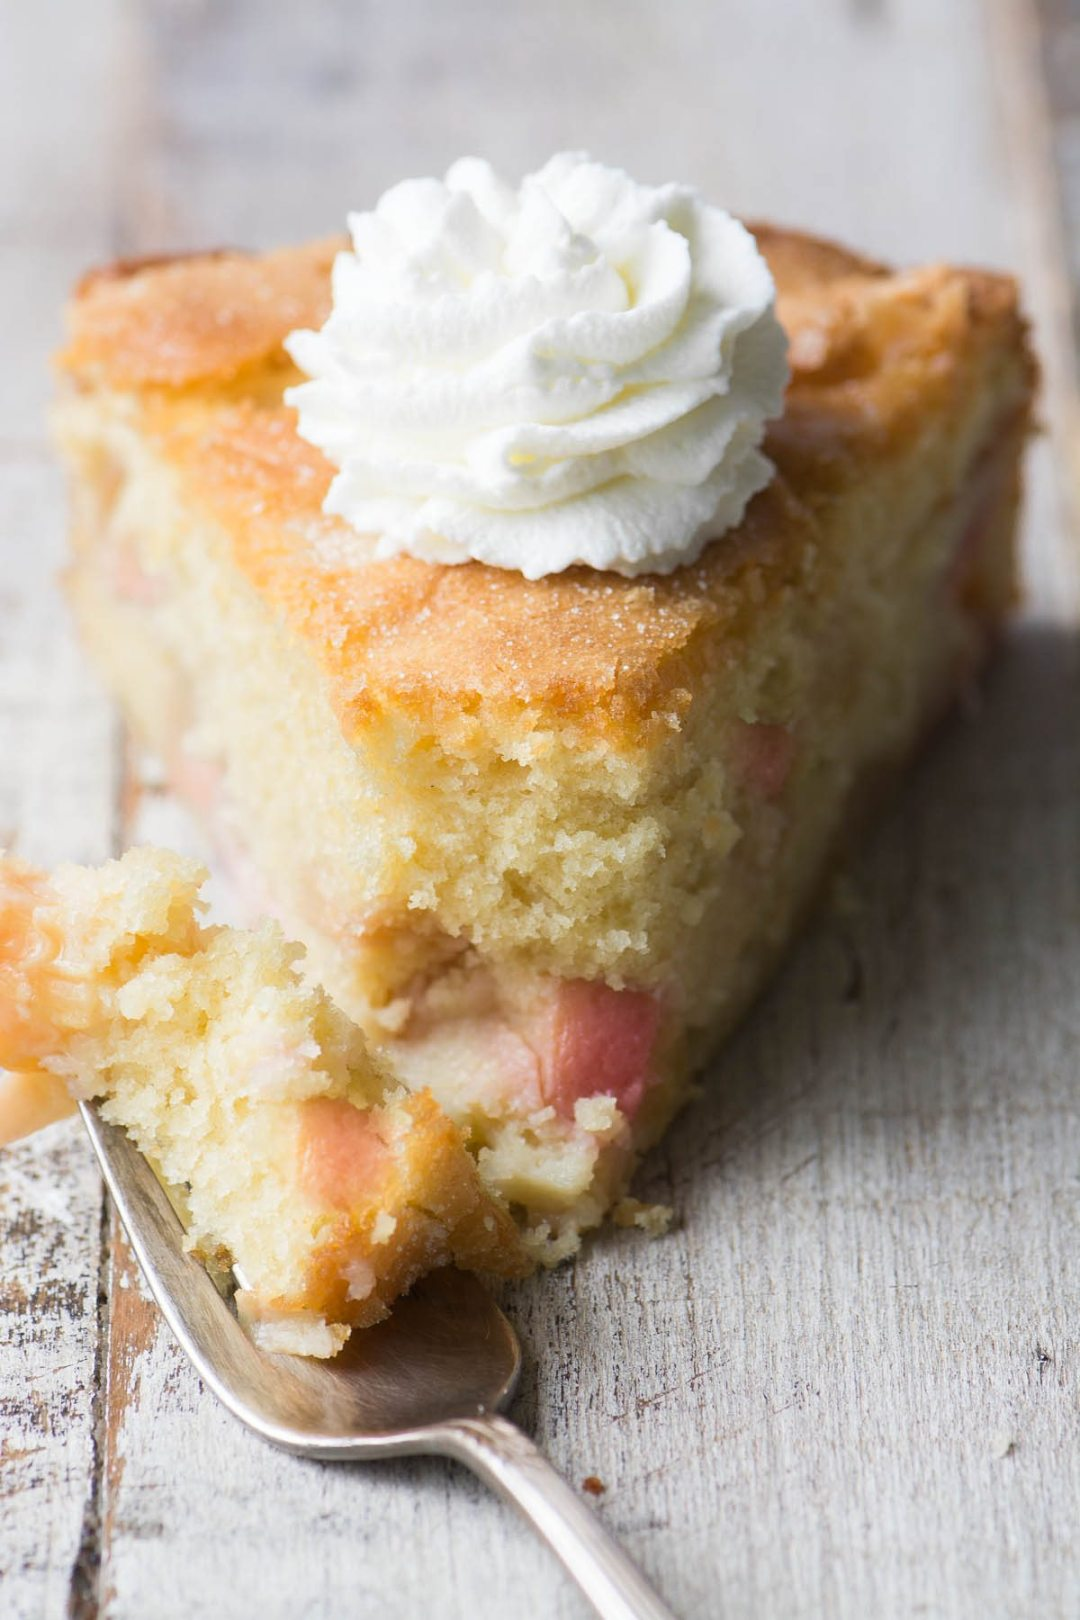 A slice of peaches and cream breakfast cake with whipped cream and fork